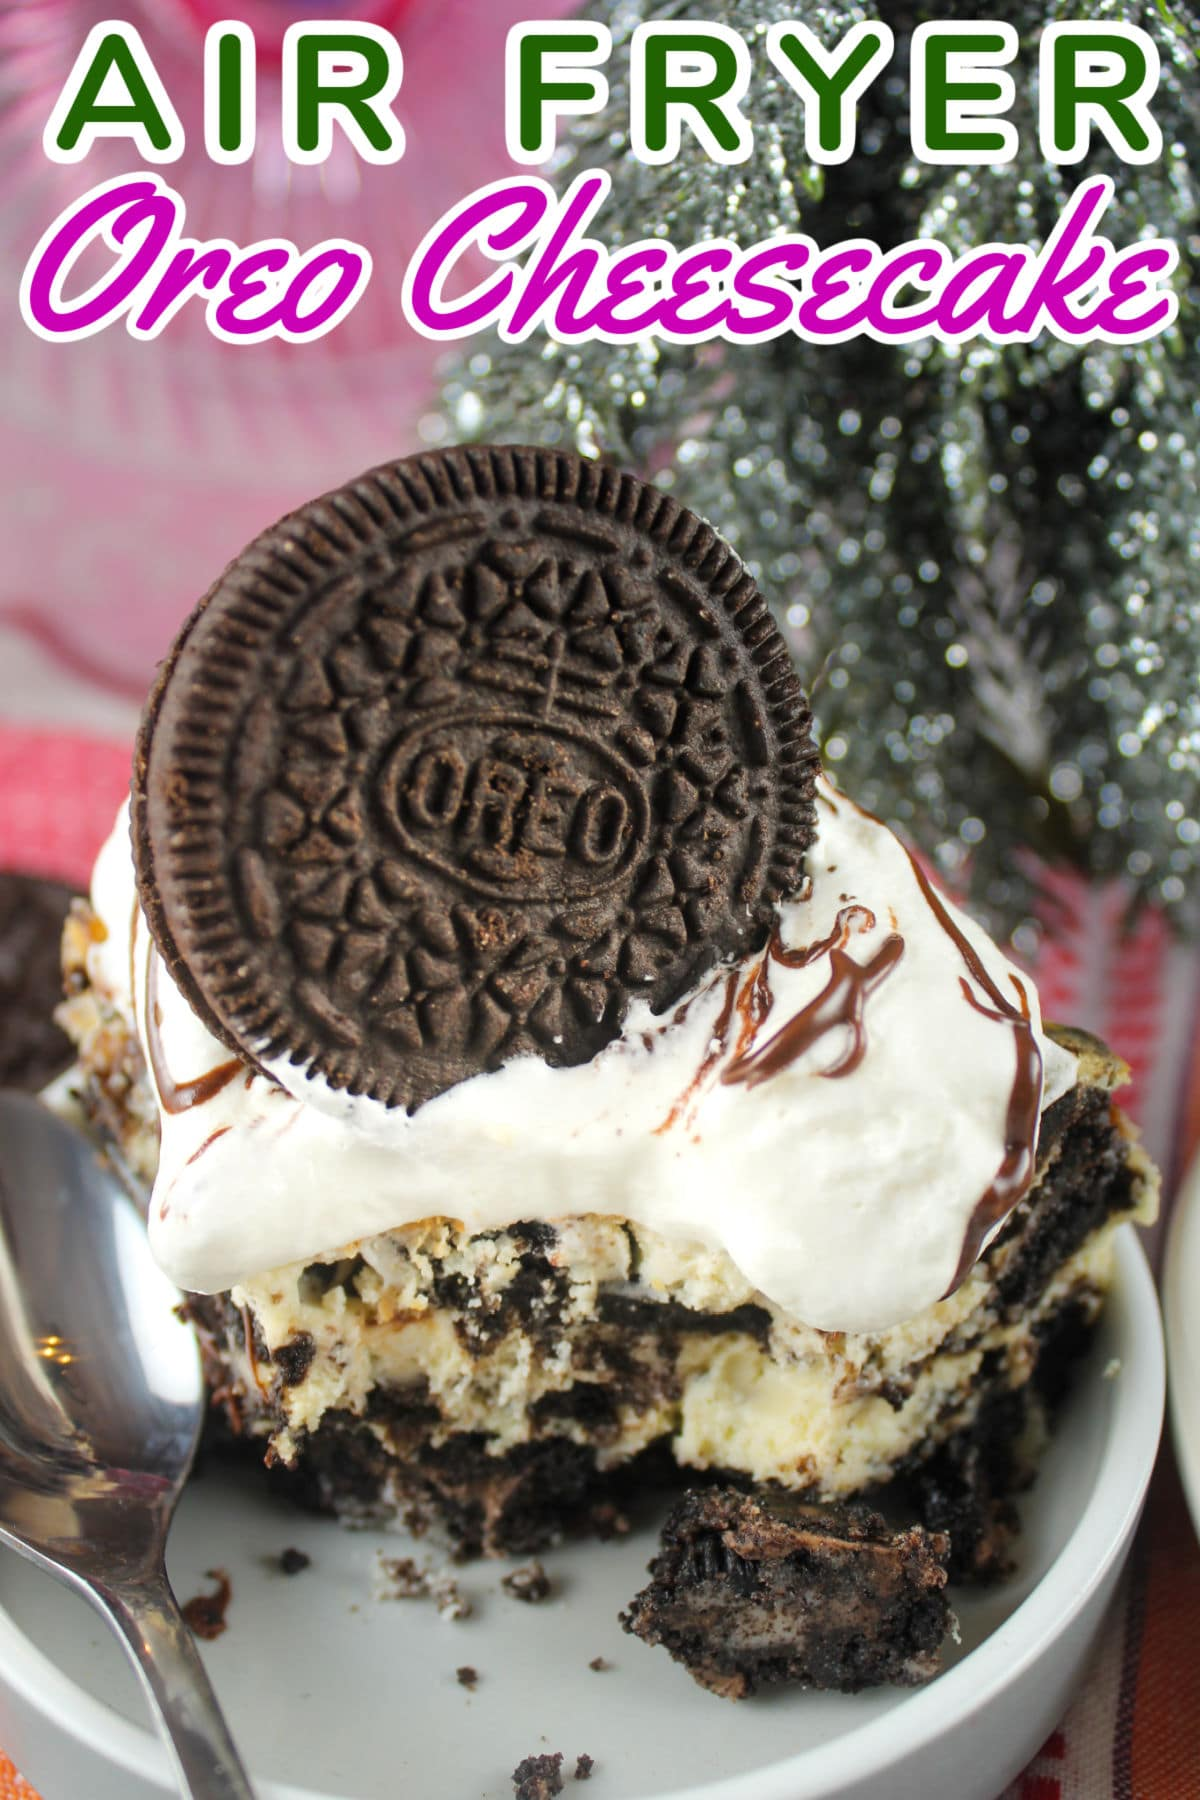 This Air Fryer Oreo Cheesecake was a milestone for me! I've had a food blog for 10+ years and never made a real cheesecake - UNTIL NOW! It's actually fairly simple and even quicker in the air fryer!  via @foodhussy